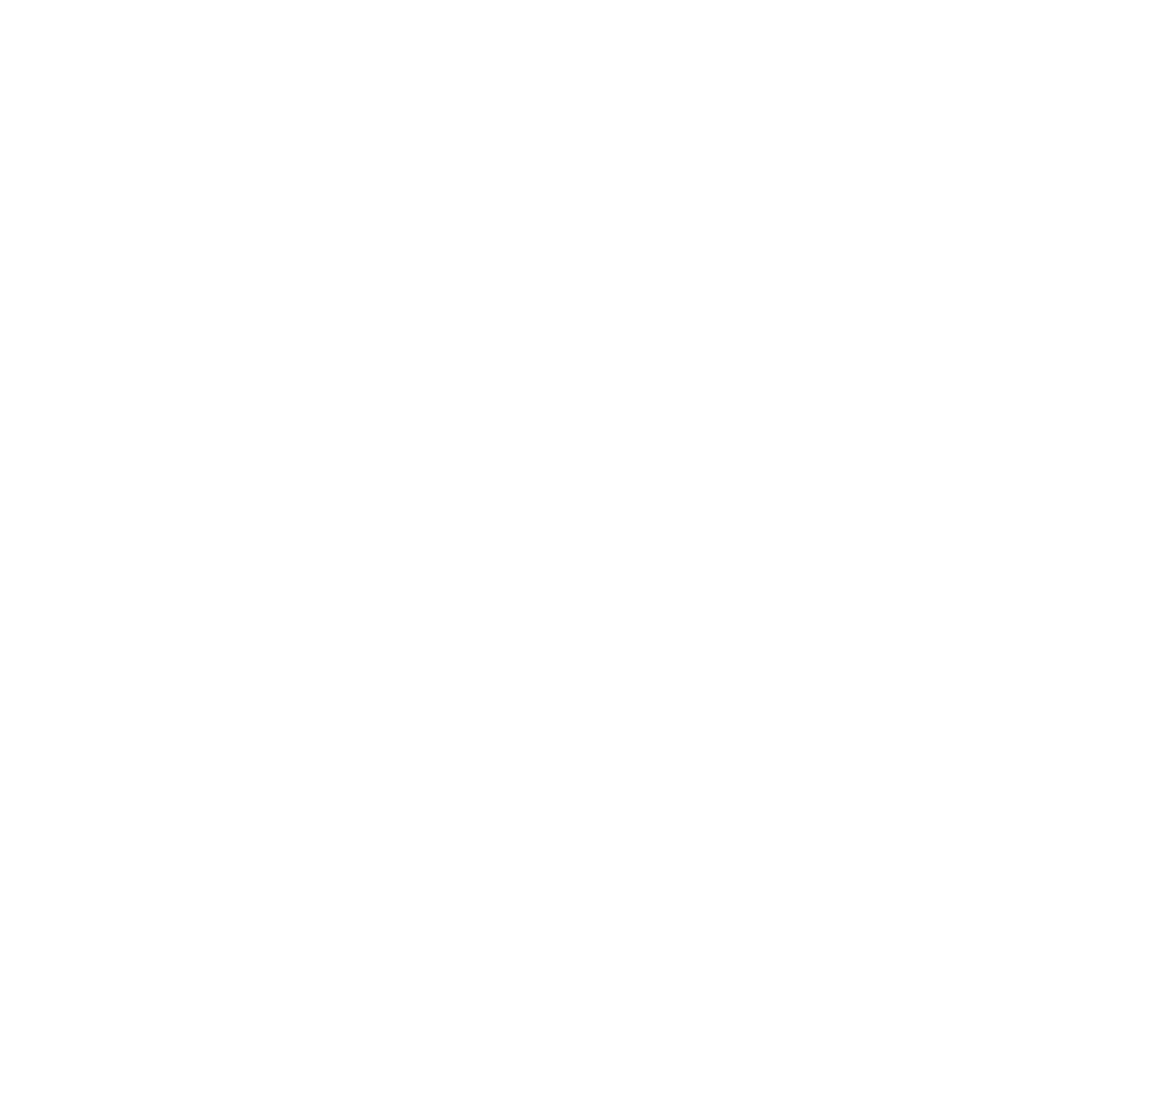 The Space Cade7s